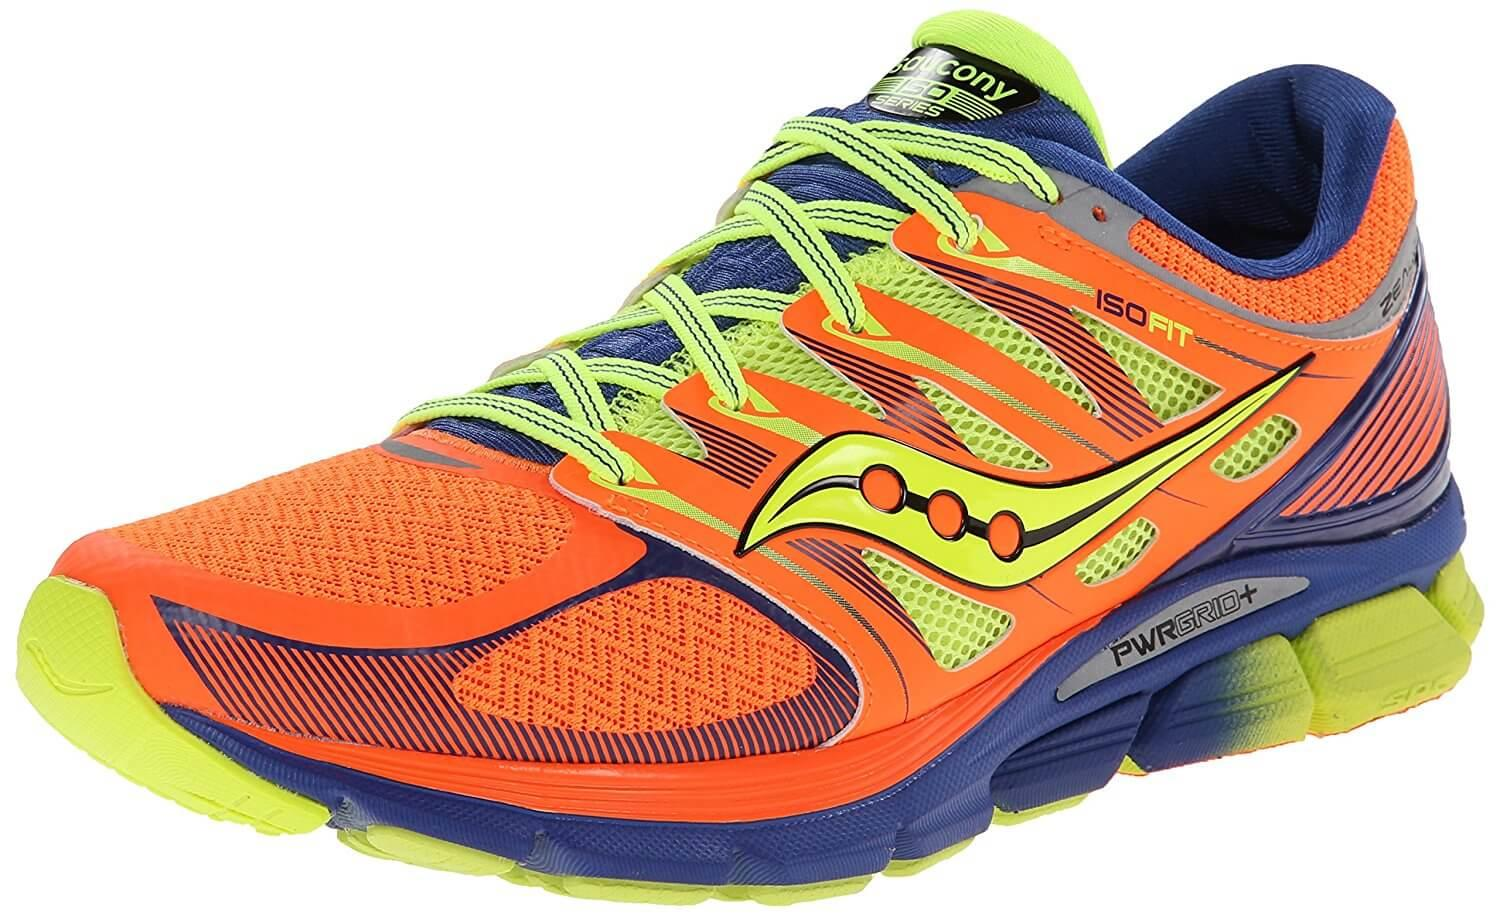 The Saucony Zealot ISO adapts to your movements with ISOFIT technology.